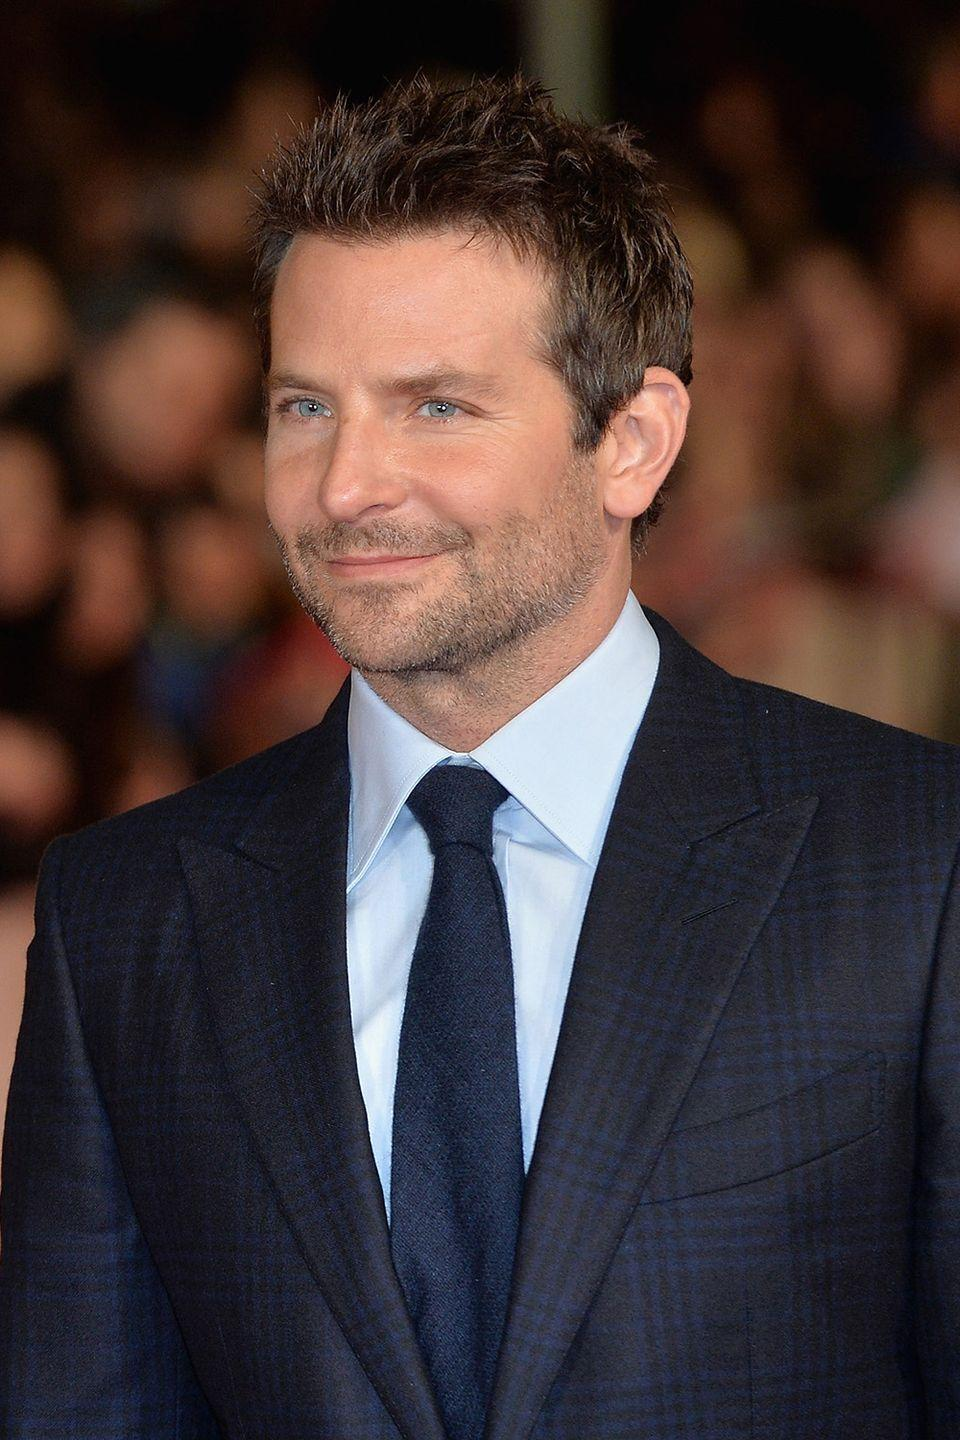 """<p>The actor discussed his sobriety in his <a href=""""http://www.gq.com/story/bradley-cooper-cover-story-january-2014"""" rel=""""nofollow noopener"""" target=""""_blank"""" data-ylk=""""slk:GQ"""" class=""""link rapid-noclick-resp"""">GQ</a> cover story back in 2013, explaining that at the age of 29 he felt """"if I continued it, I was really going to sabotage my whole life.""""</p>"""